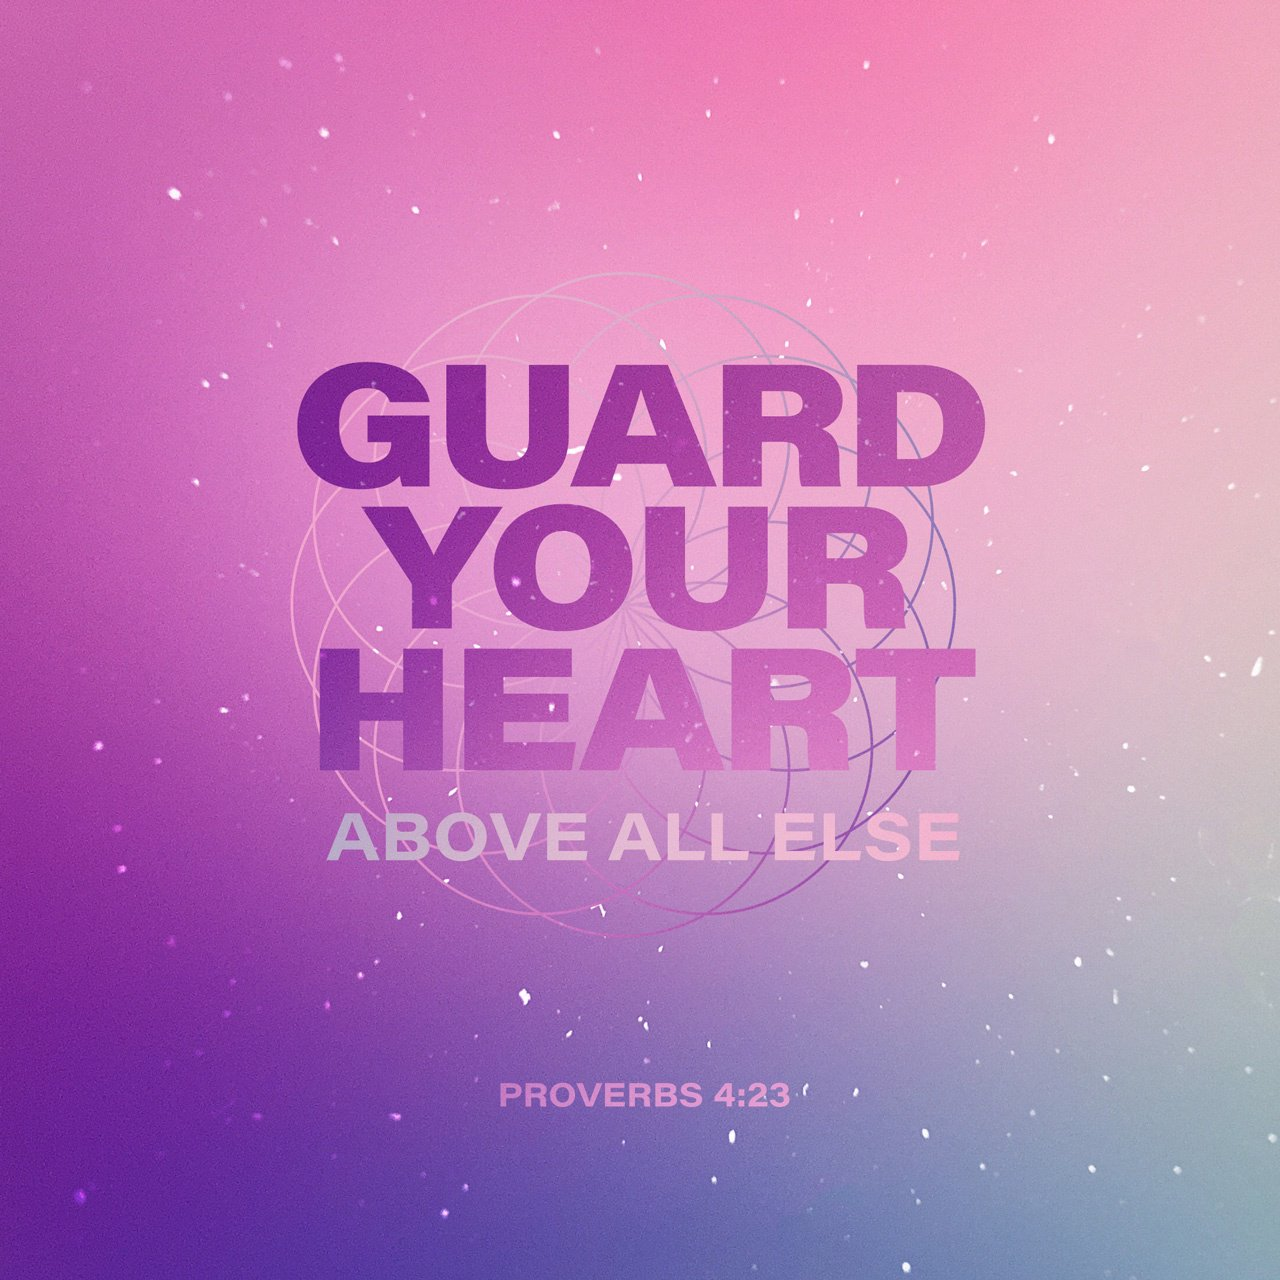 Guard your heart above all else, for it determines the course of your life. https://t.co/yCX6FUmiZL https://t.co/raTYFftpEO